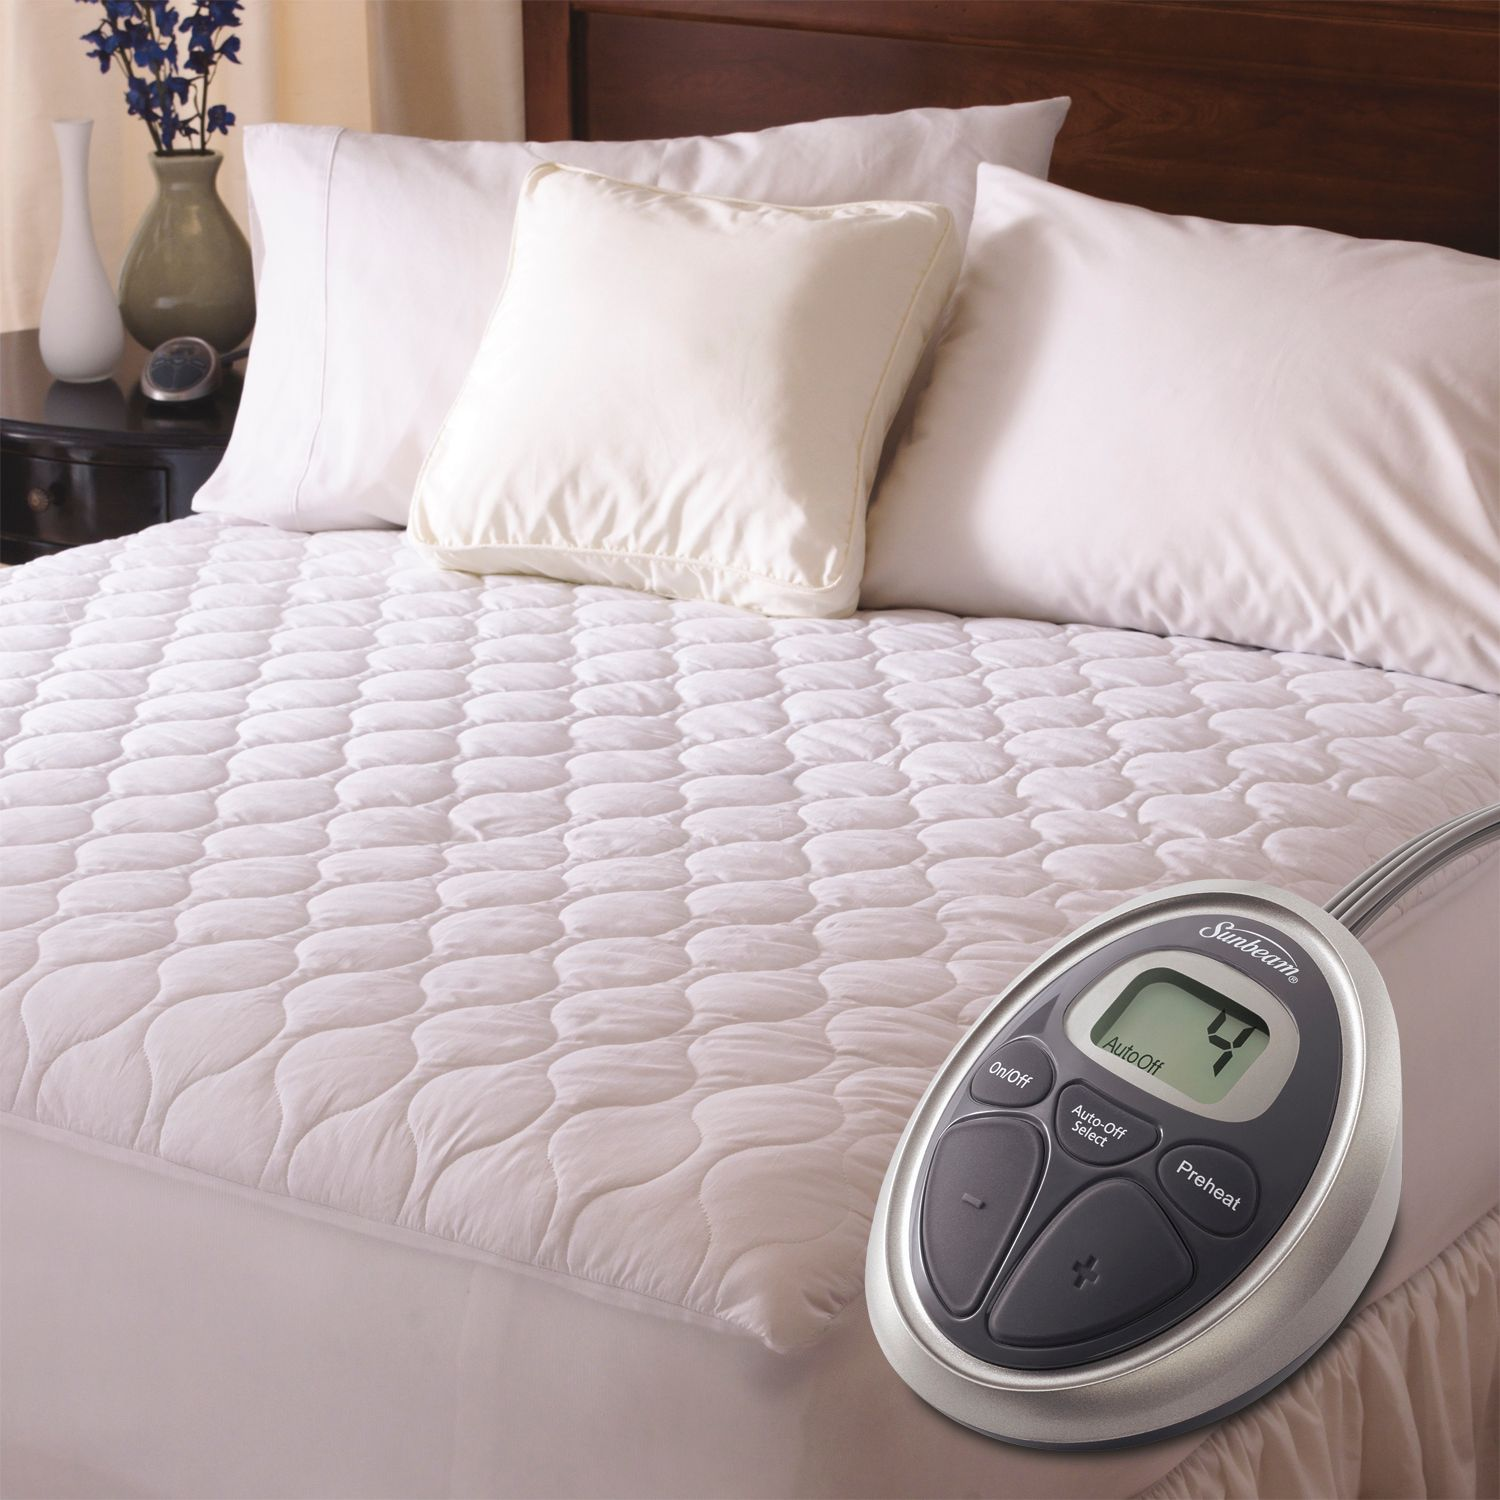 sunbeam slumber rest waterproof electric mattress pad